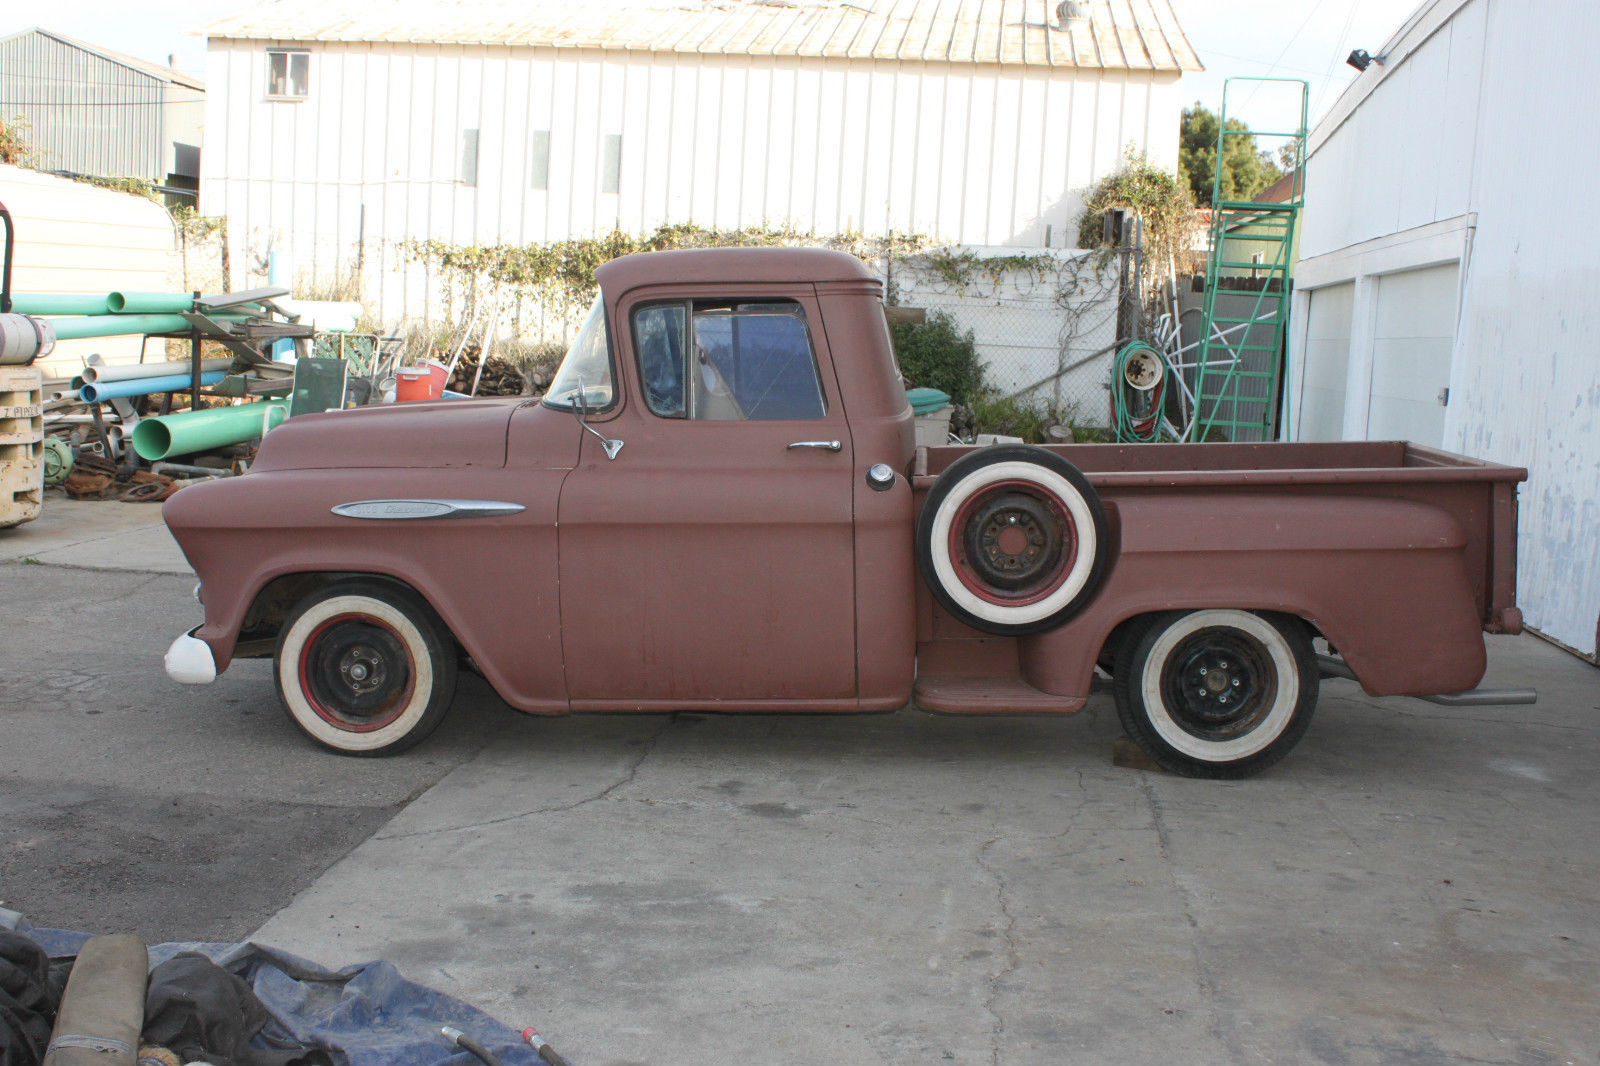 57 Chevy Truck Rat Rod Hot Classicno Motor Or Tranny Classic 1957 Pickup Sale Chevrolet Other Pickups For